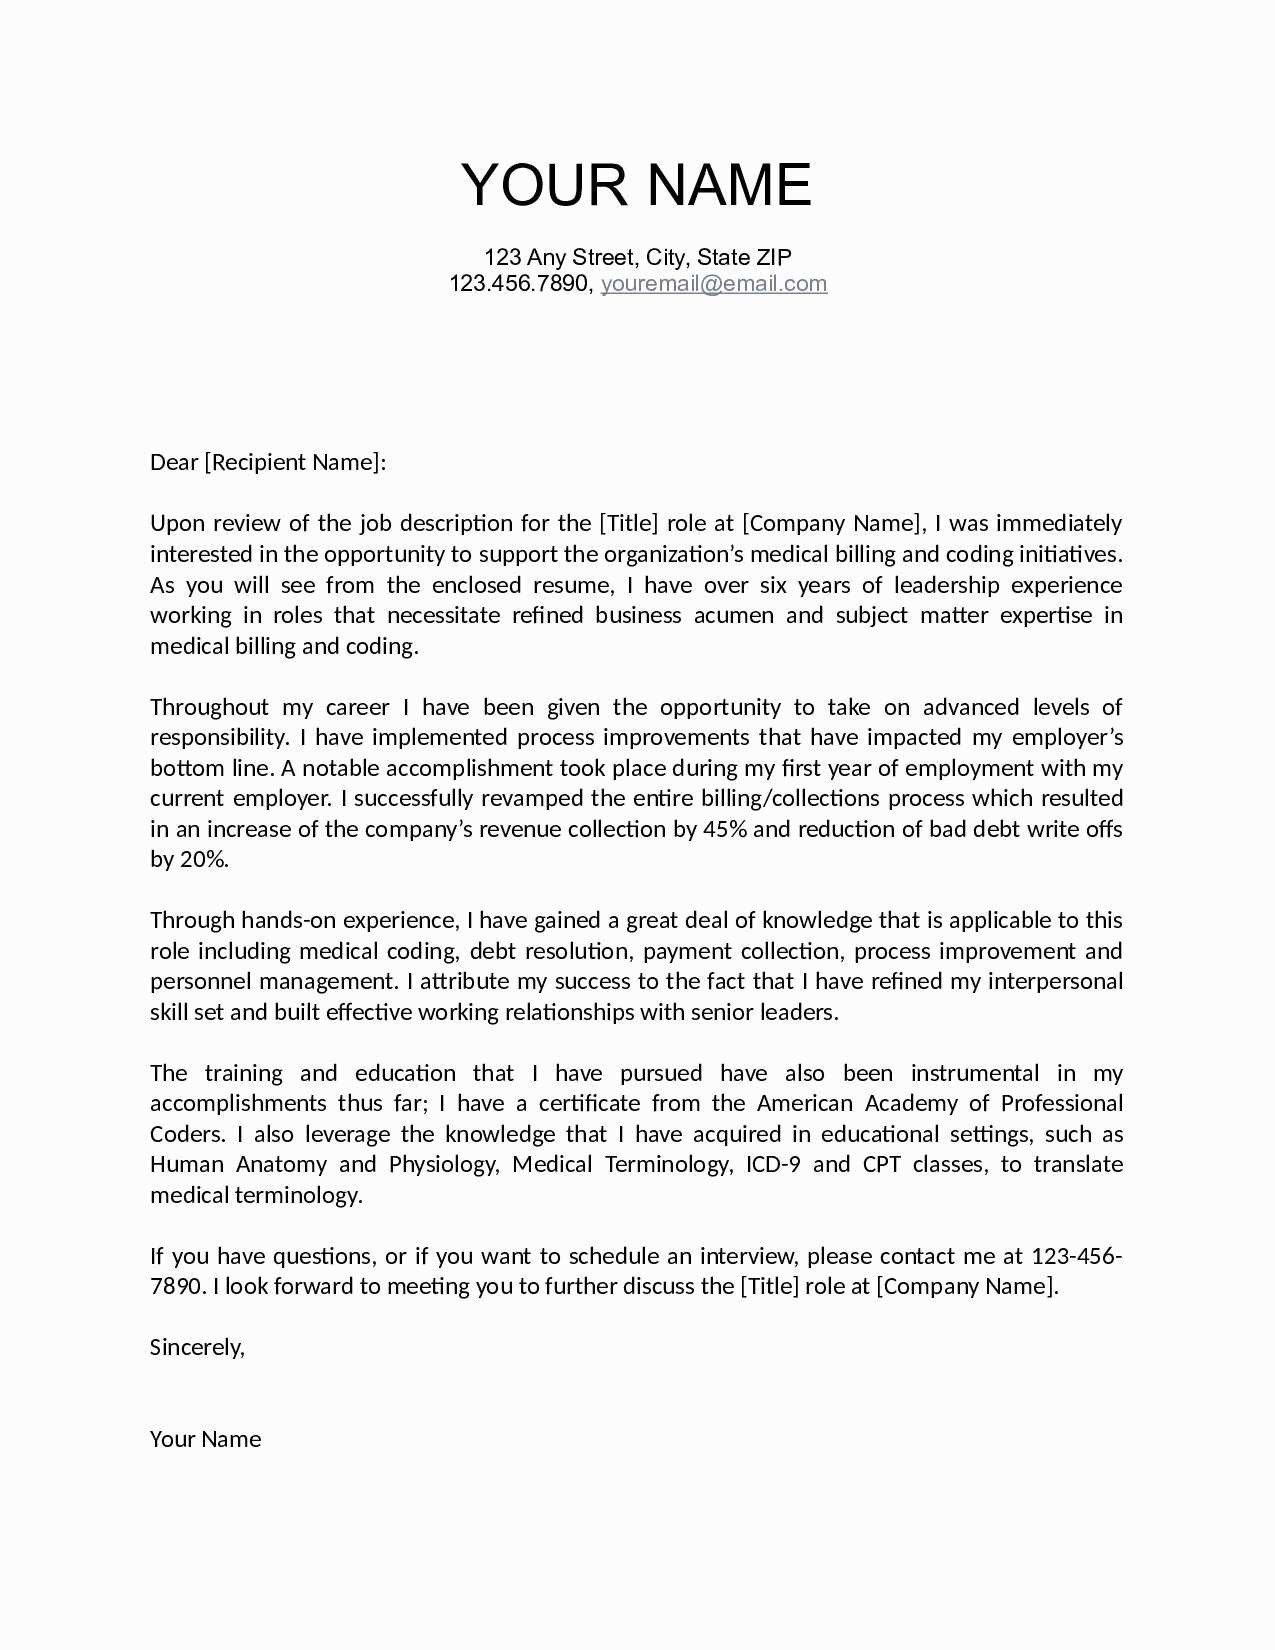 Mortgage commitment letter template samples letter templates mortgage commitment letter template collection mortgage mitment letter sample lovely job fer letter template us spiritdancerdesigns Image collections